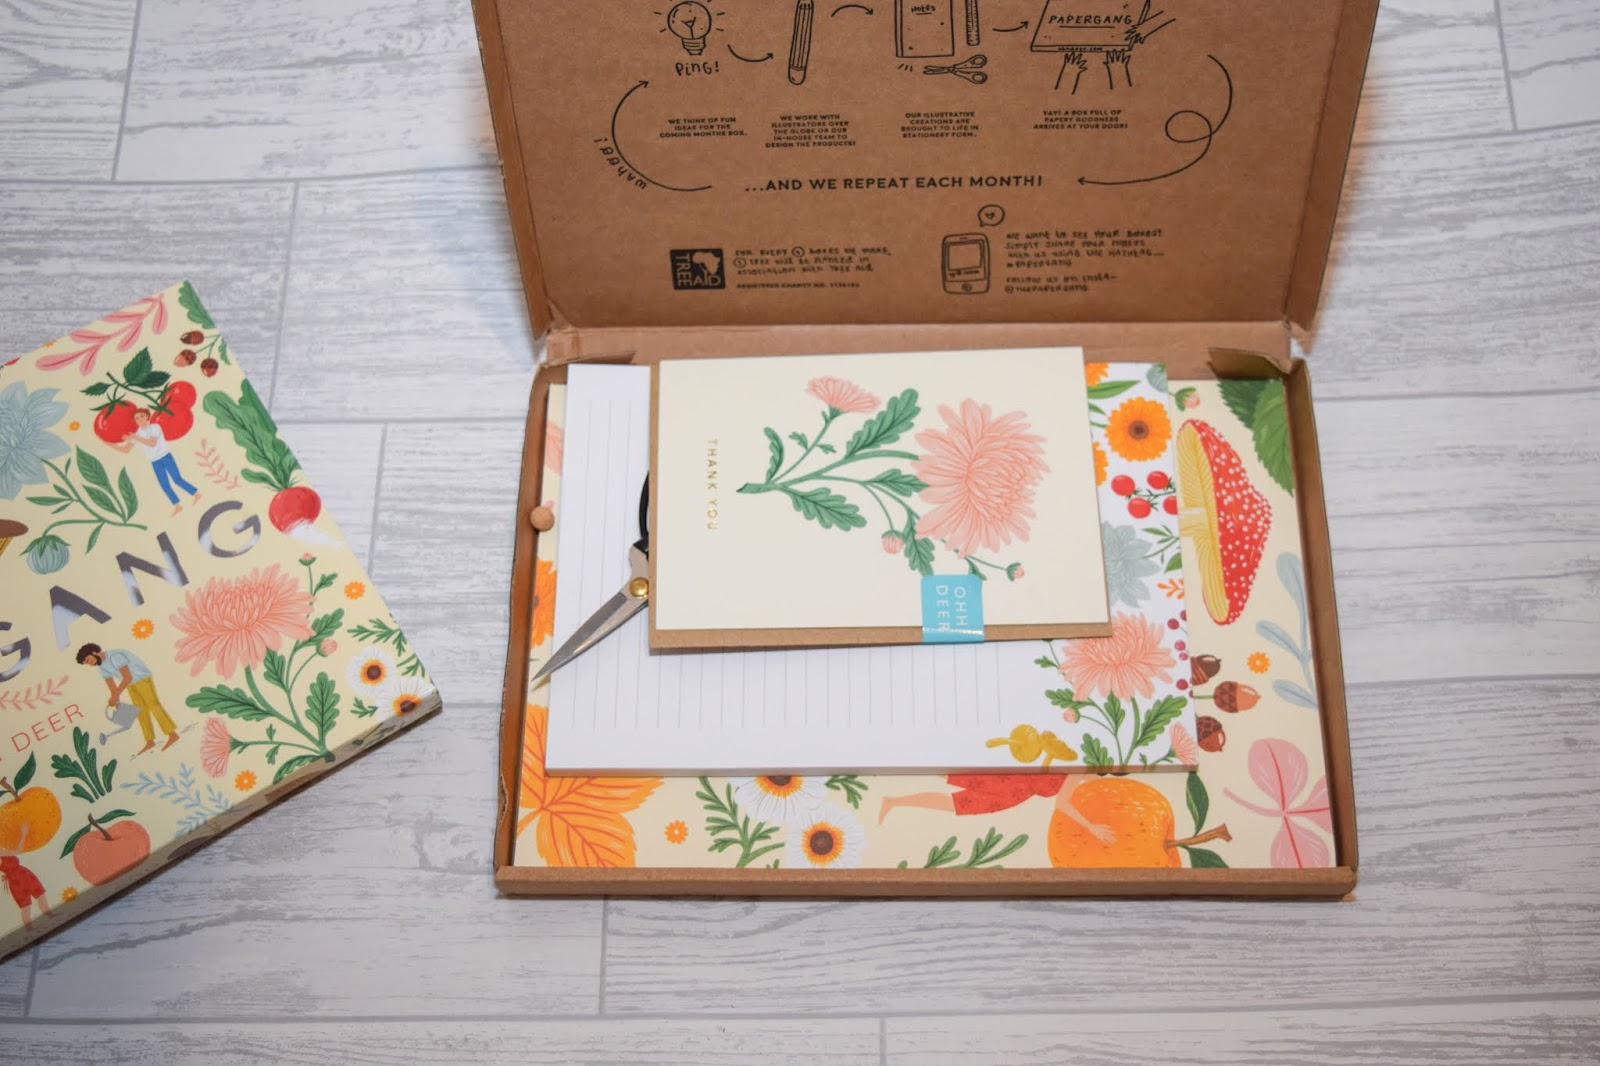 A cardboard box open to reveal the contents inside including stationery and scissors.